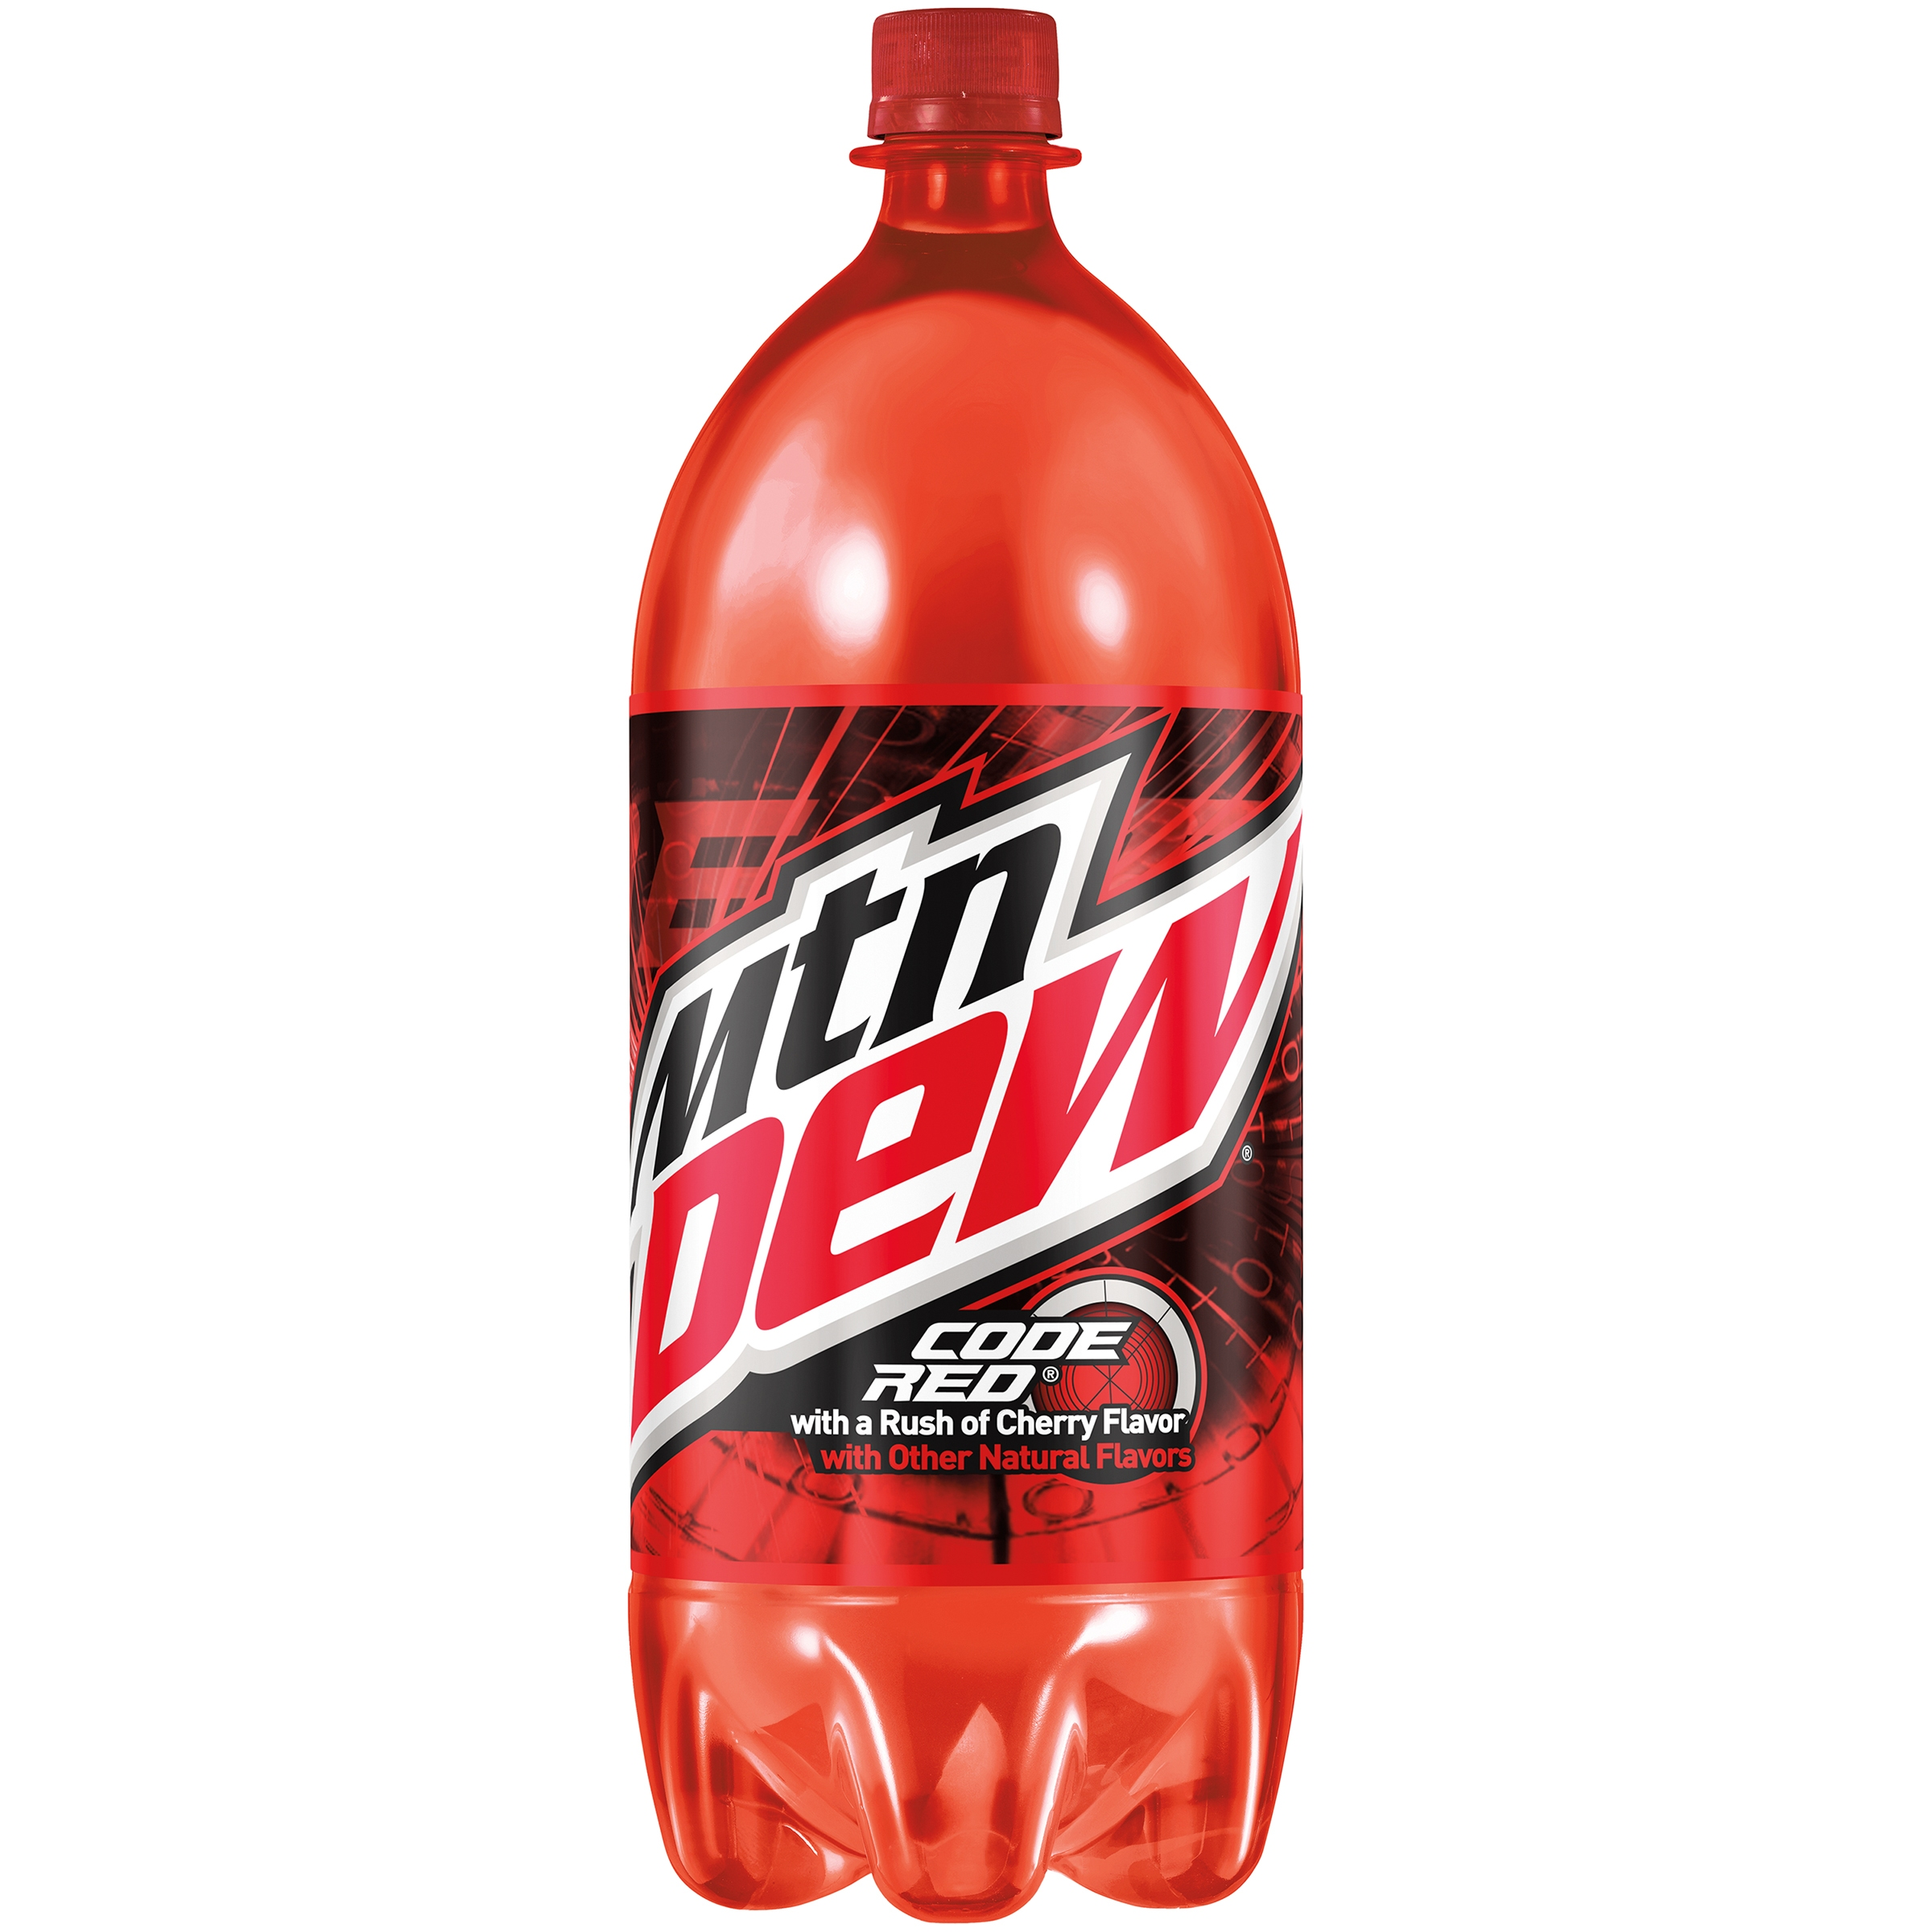 Mountain Dew Code Red Cherry Flavor Soda 2l Plastic Bottle